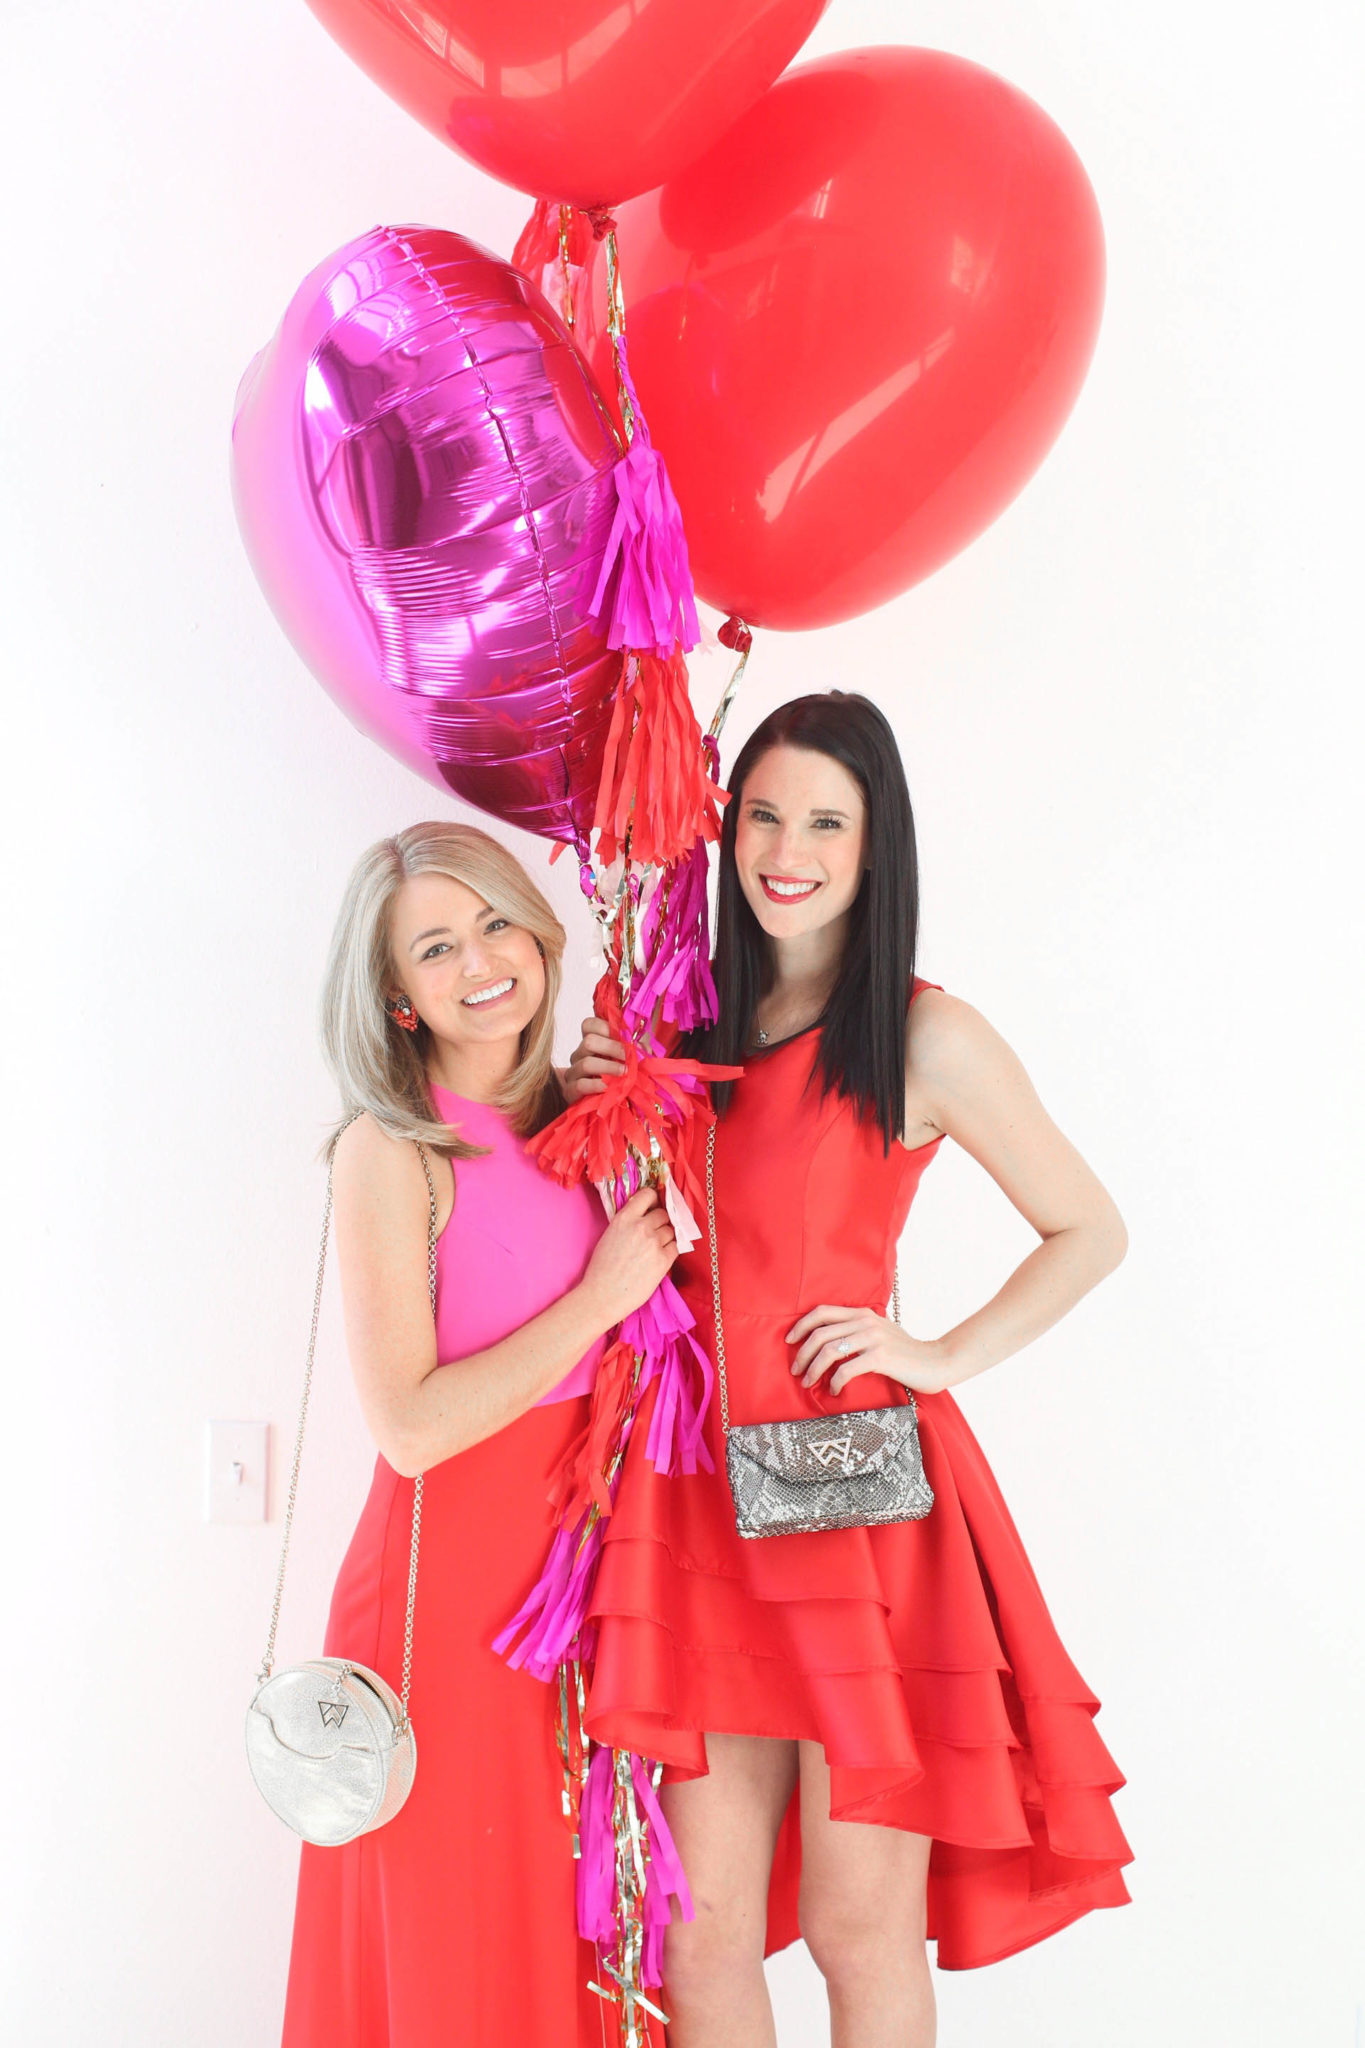 12 Must Have Little Red Dresses for Galentine's Day | classy red dresses | red dress outfit | valentine's day outfit | Valentine's Day dress || Dressed to Kill #reddress #valentinedress #valentineoutfit | Little Red Dresses for Galentine's Day by popular US fashion blog, Dressed to Kill: image of 2 women holding balloons and wearing a Jill Jill Stuart red dress, Kelly Wynne bag and Steve Madden shoes for the first women and a red Chiwish dress, Christian Louboutin shoes and Kelly Wynne bag on the other woman.